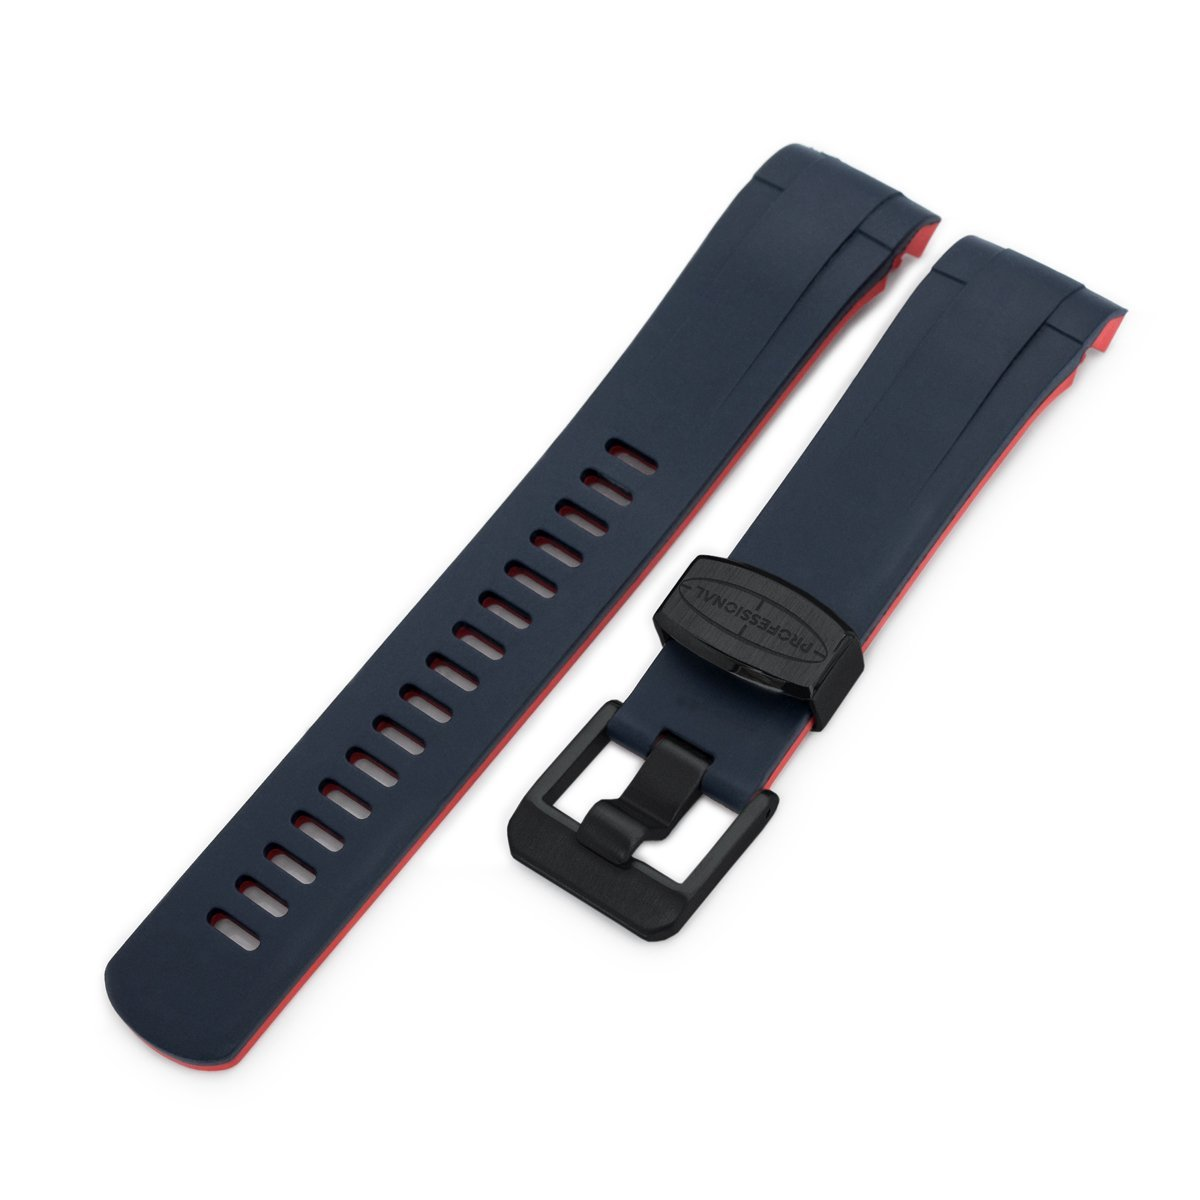 22mm Crafter Blue Dual Color Blue & Red Rubber Curved Lug Watch Strap for TUD BB M79230 PVD Black Buckle Strapcode Watch Bands